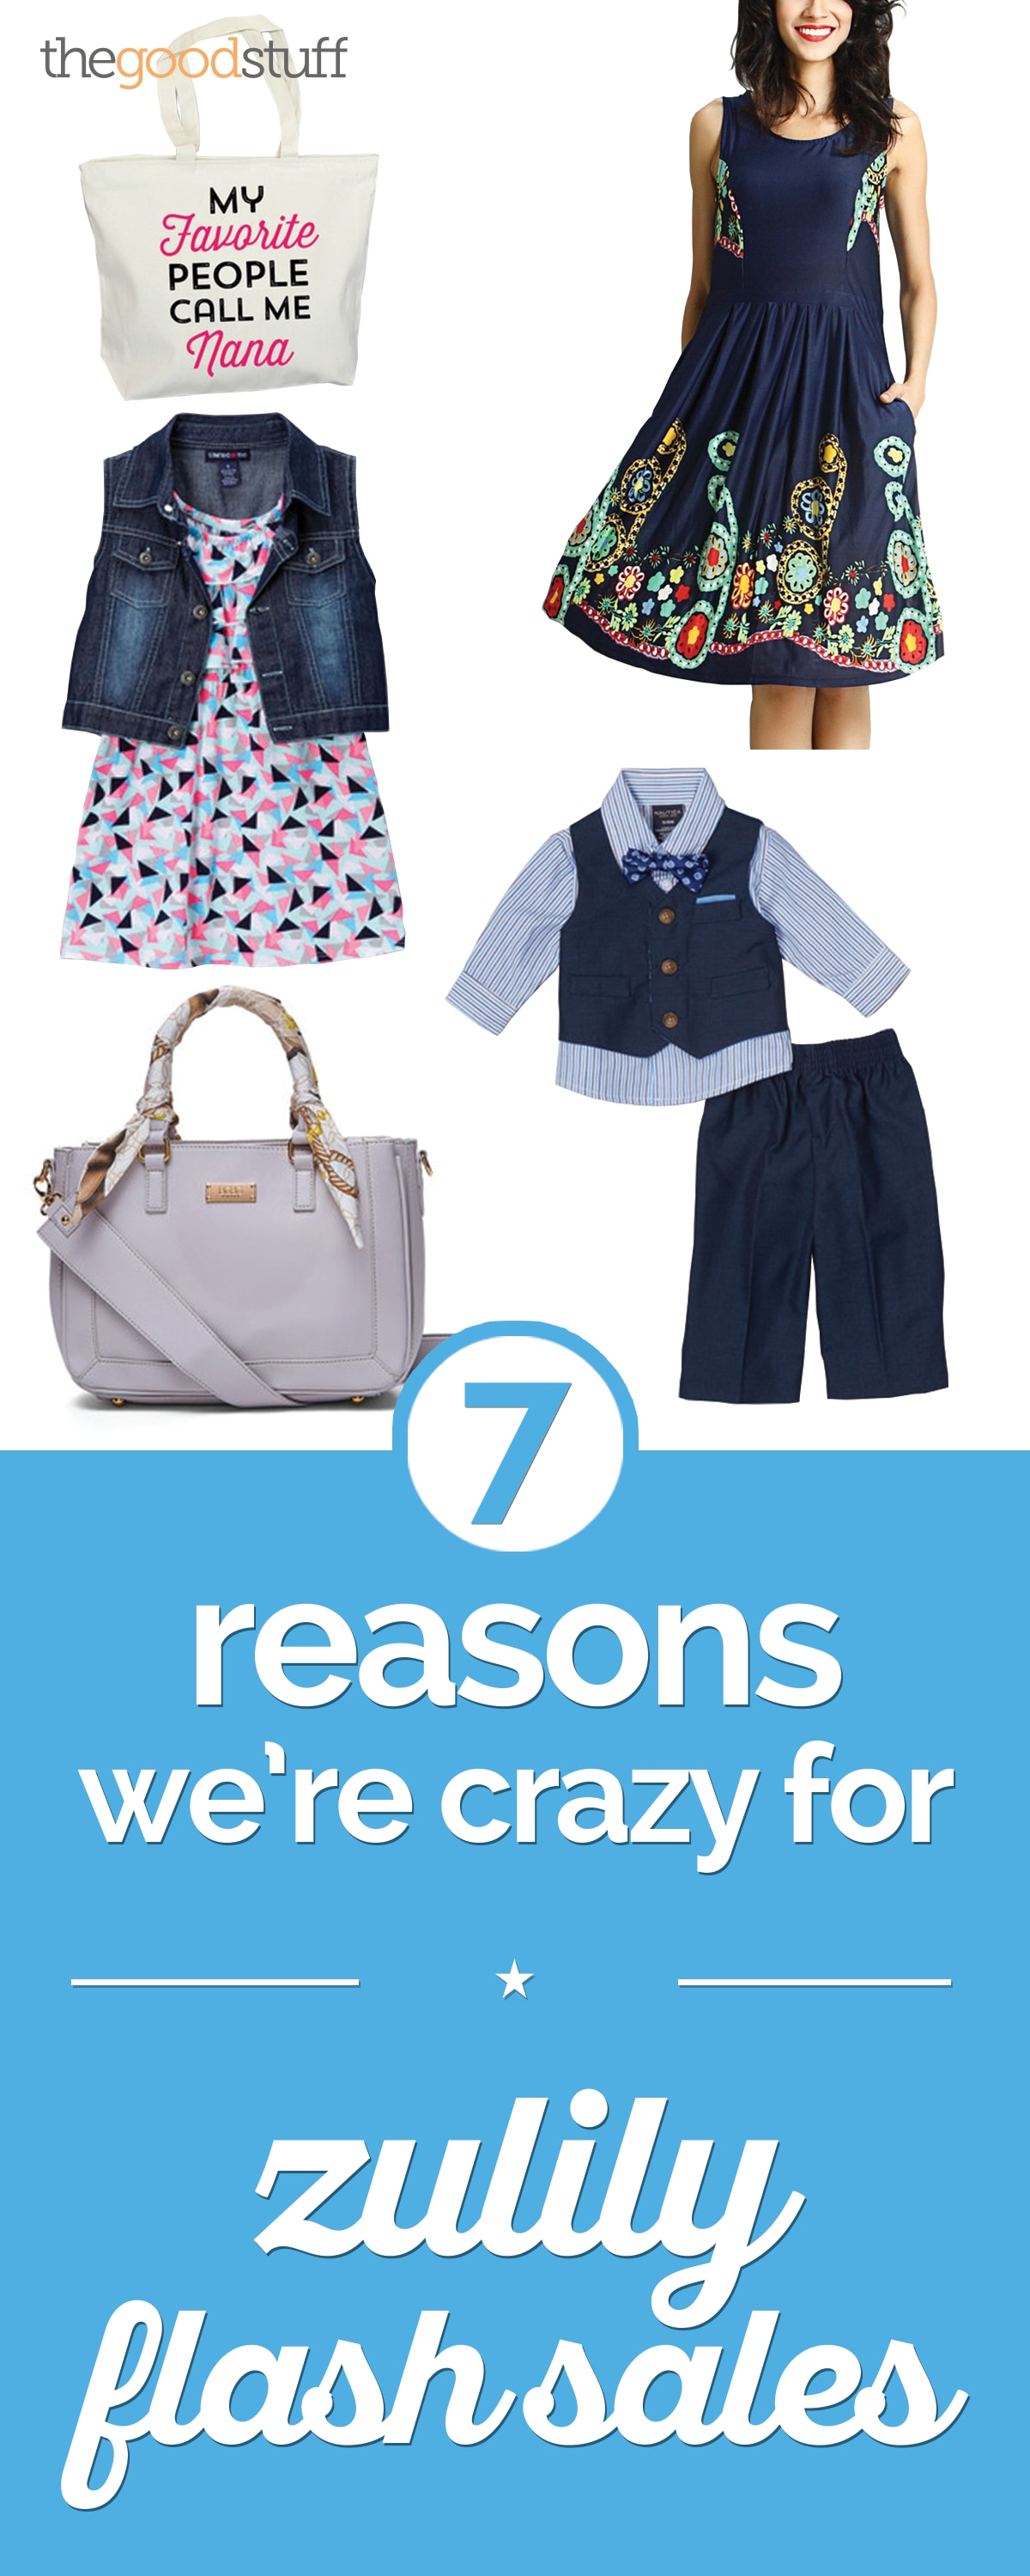 7 Reasons We're Crazy for zulily Flash Sales | thegoodstuff